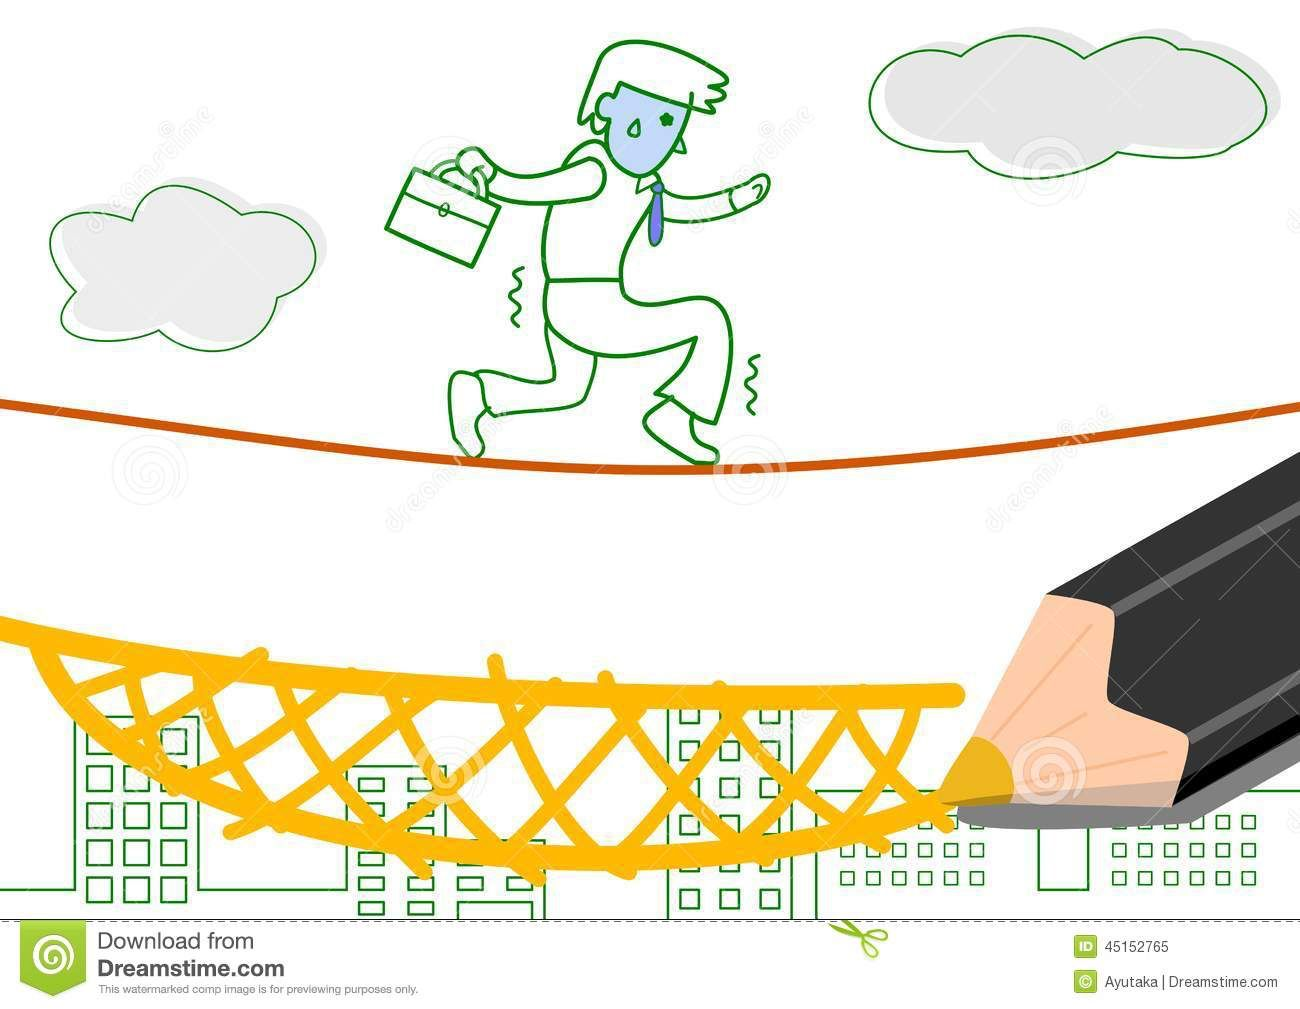 Line Drawing Website : Image from http thumbs dreamstime z risk guarantee